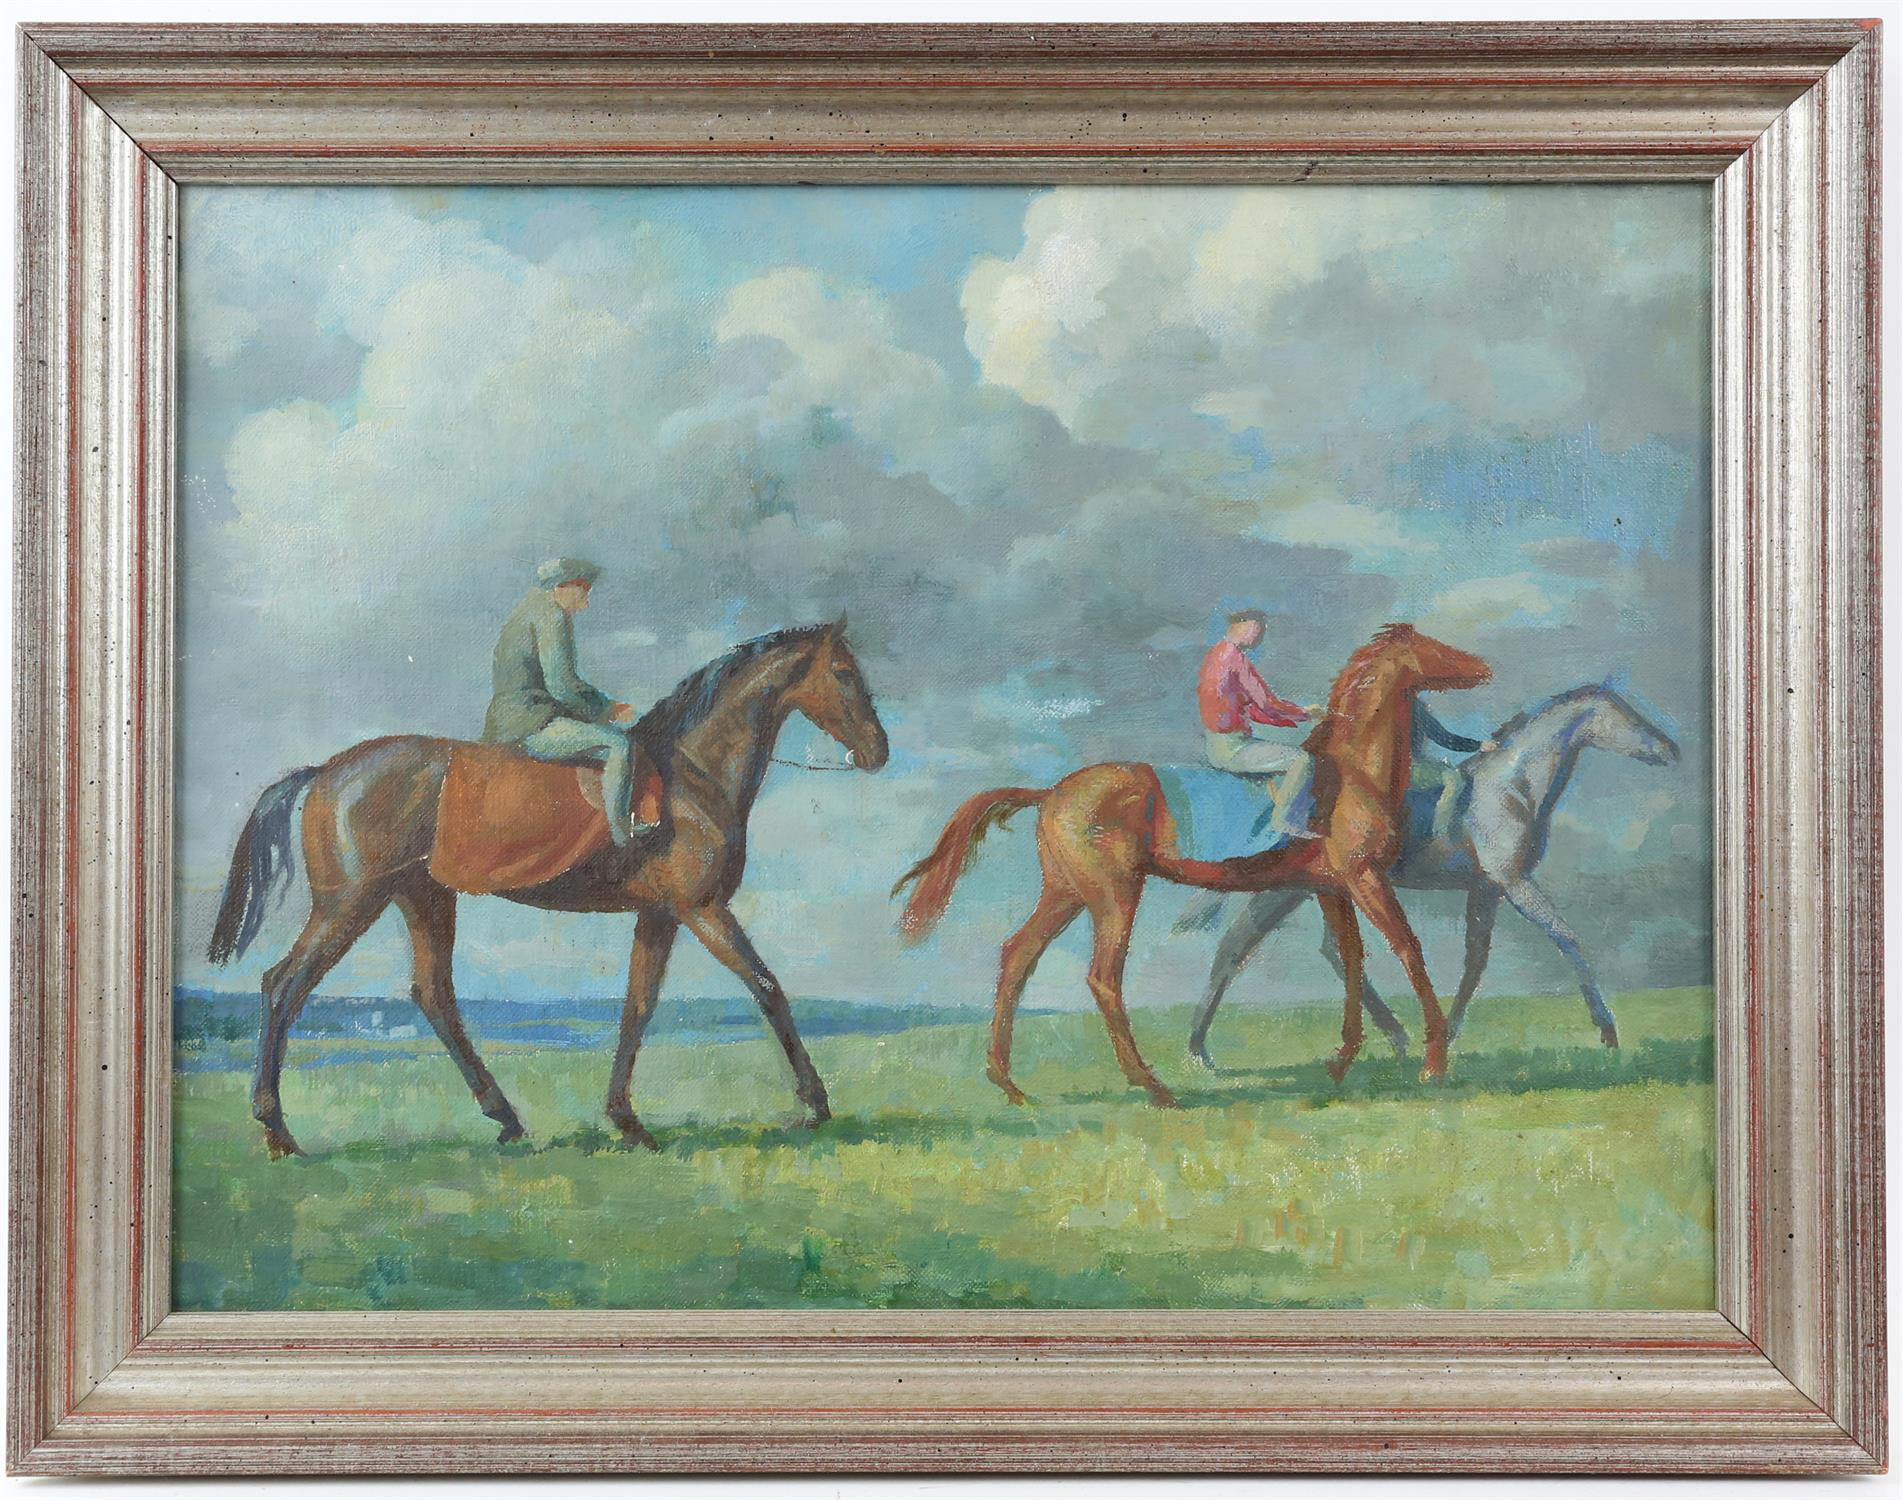 § Lionel Ellis (1903-1988) Riders in a landscape. Oil on canvas, unsigned. 38 x 48cm. - Image 2 of 3